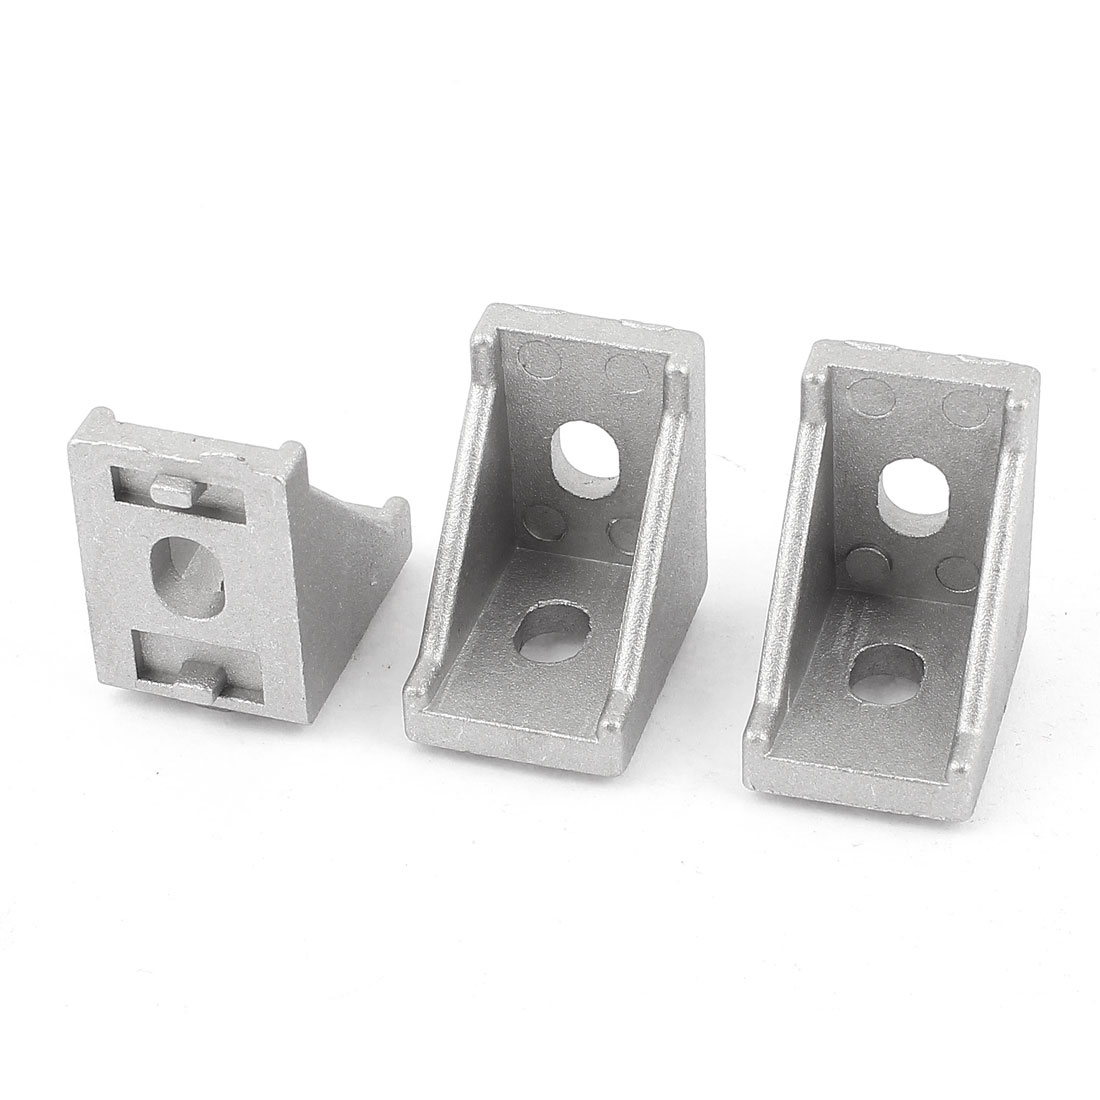 3 Pcs Silver Tone Metal 90 Degree Door Angle Bracket 20mm x 20mm